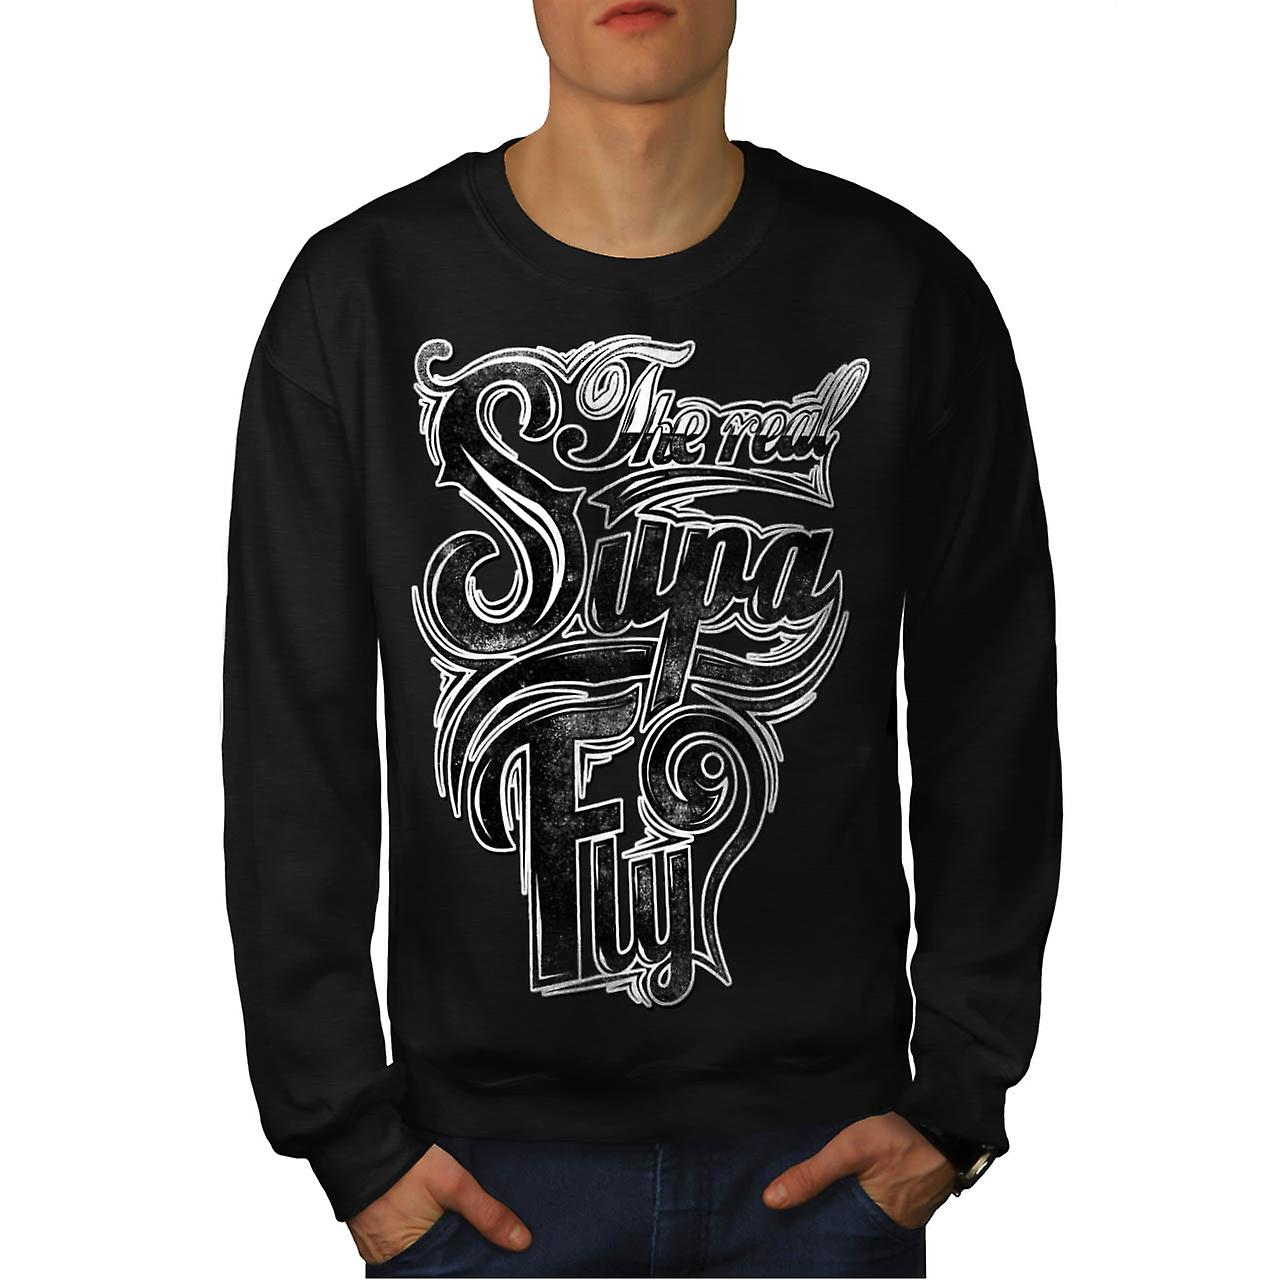 Real Supa Fly Cool Slogan Men Black Sweatshirt | Wellcoda